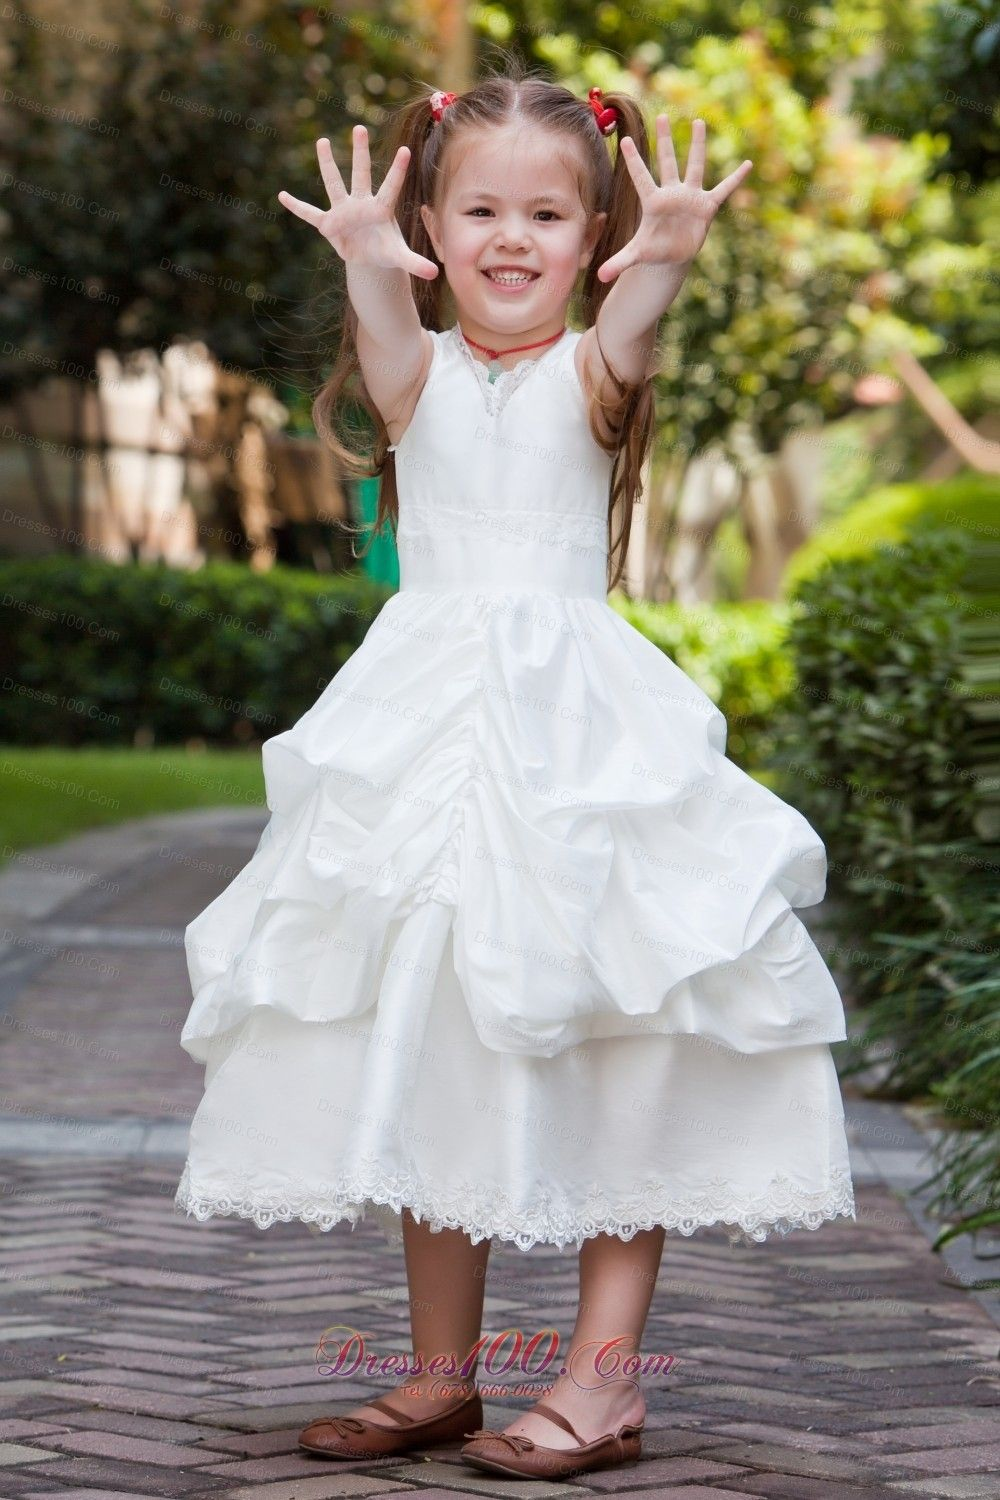 Debutante and cotillion flower girl dress in fremantle dama dresses